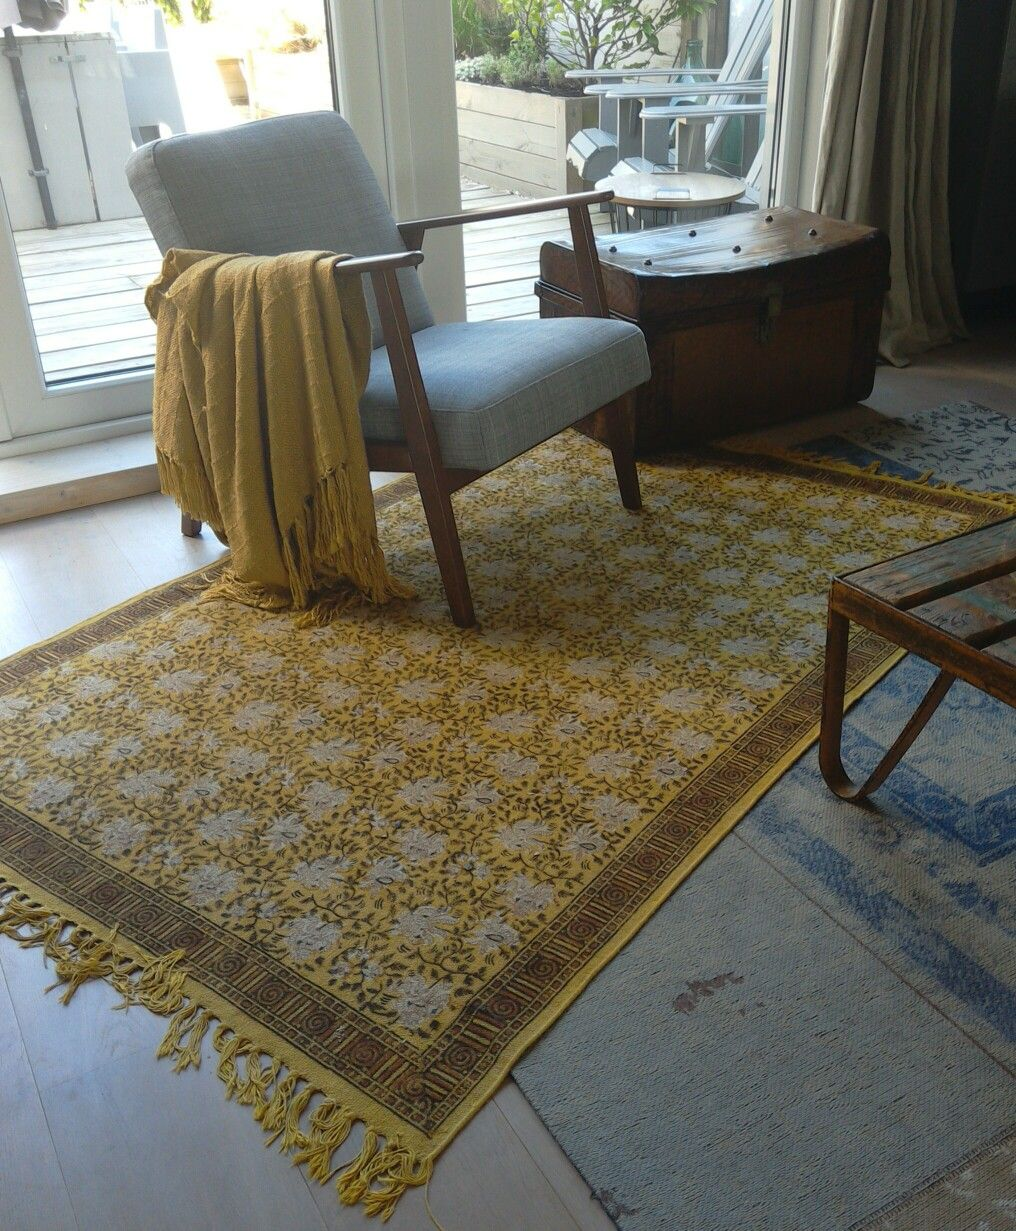 ikea chair ekenaset blue yellow rugs vintage